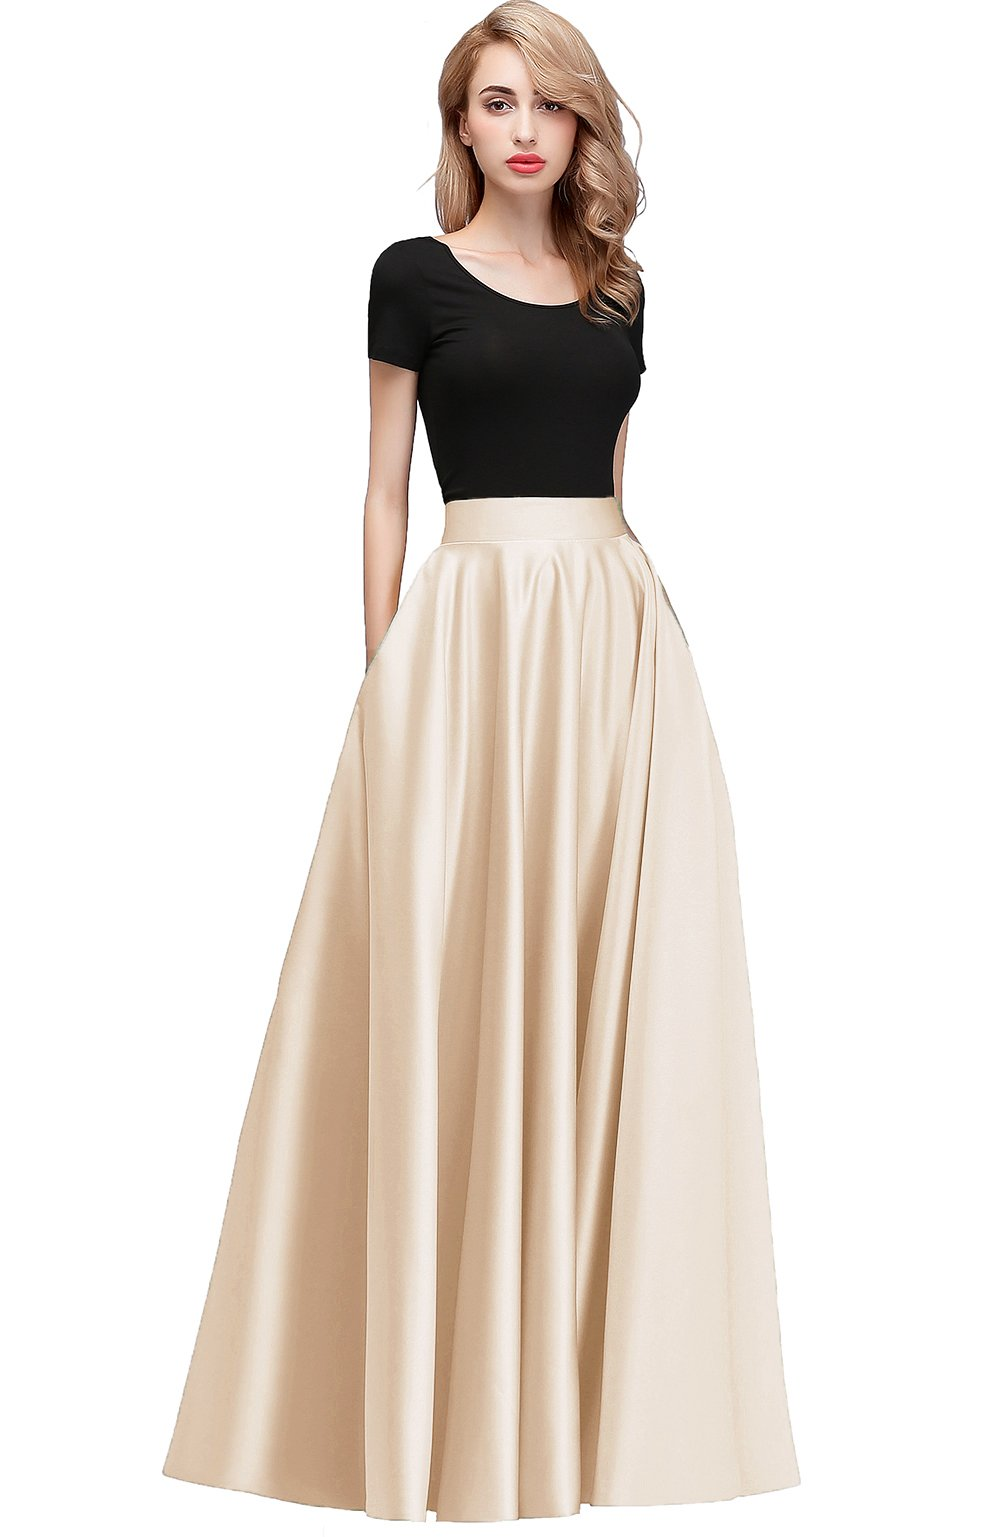 honey qiao Women Satin Skirts Long Floor Length High Waist Fomal Prom Party Skirts with Pockets Back Zipper Closure